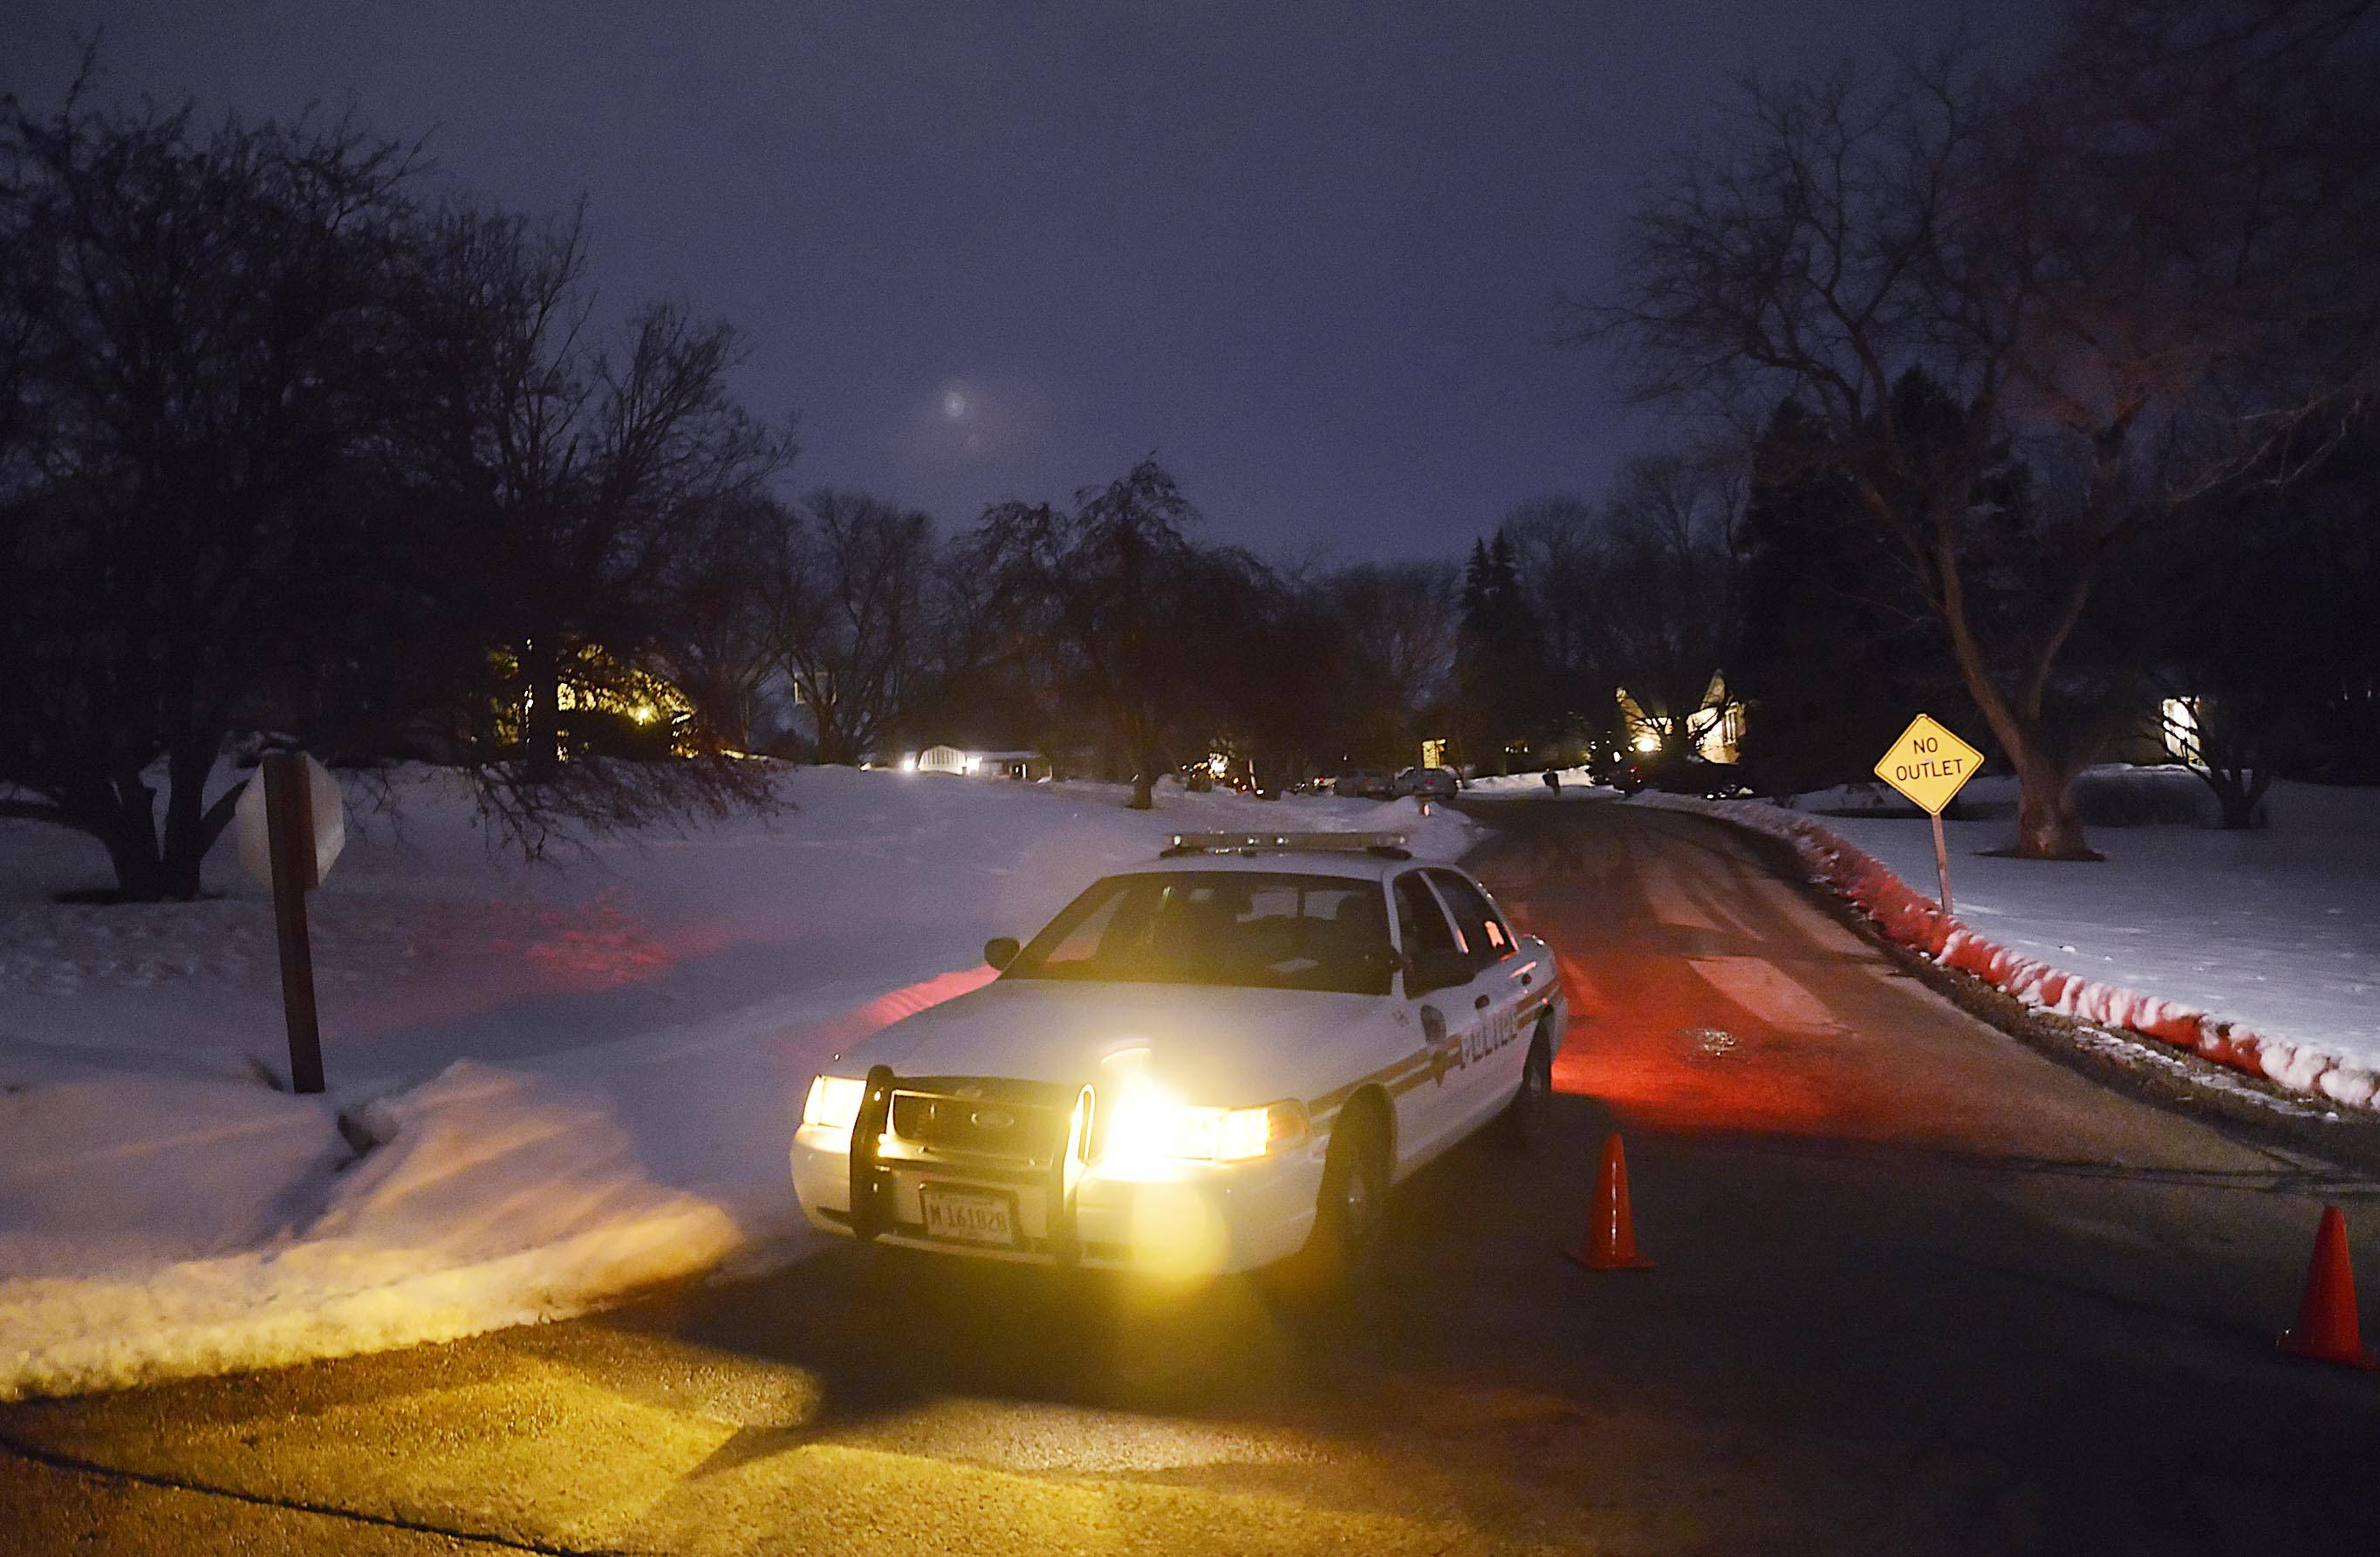 Sleepy Hollow police block in the intersection of Hemlock Dr. at Maple Ln. as they investigate a fatal police shooting at the end of the Maple Ln. cul-de-sac Sunday evening.